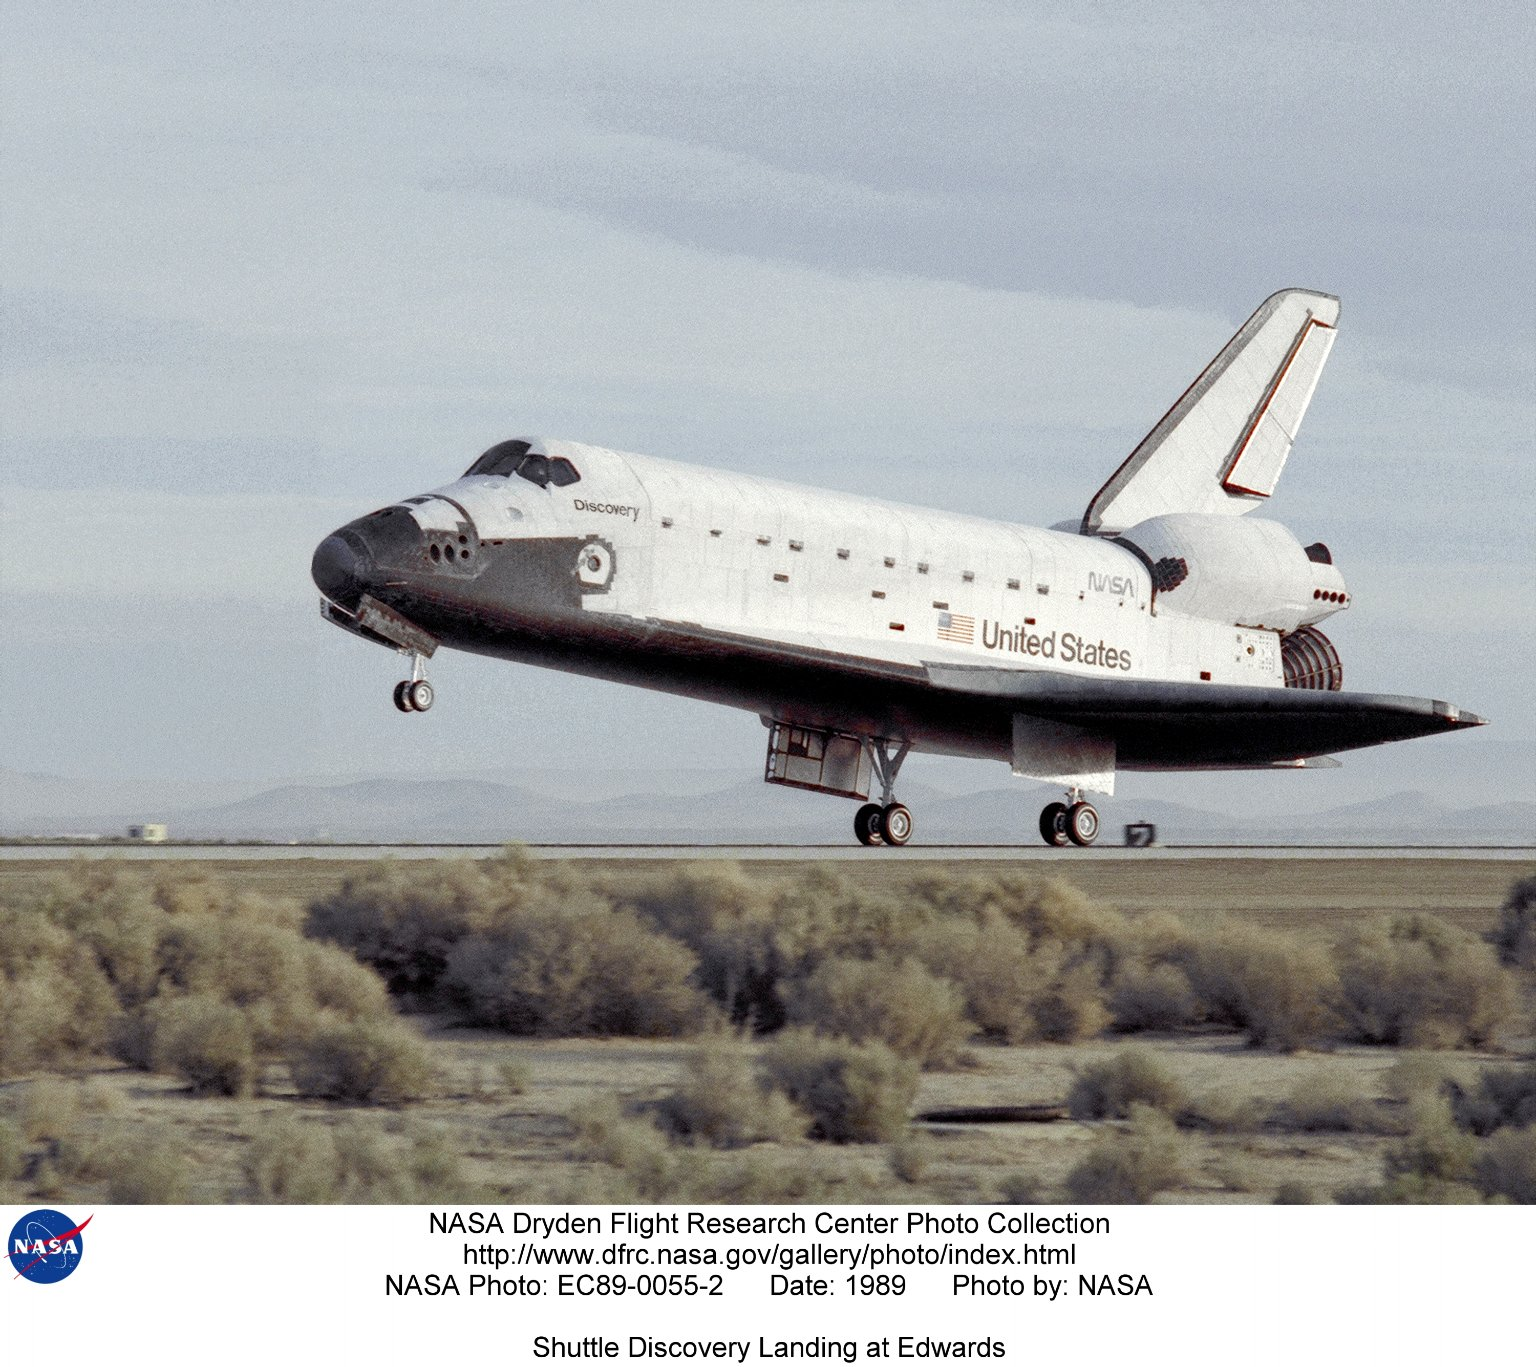 Shuttle Discovery Landing at Edwards